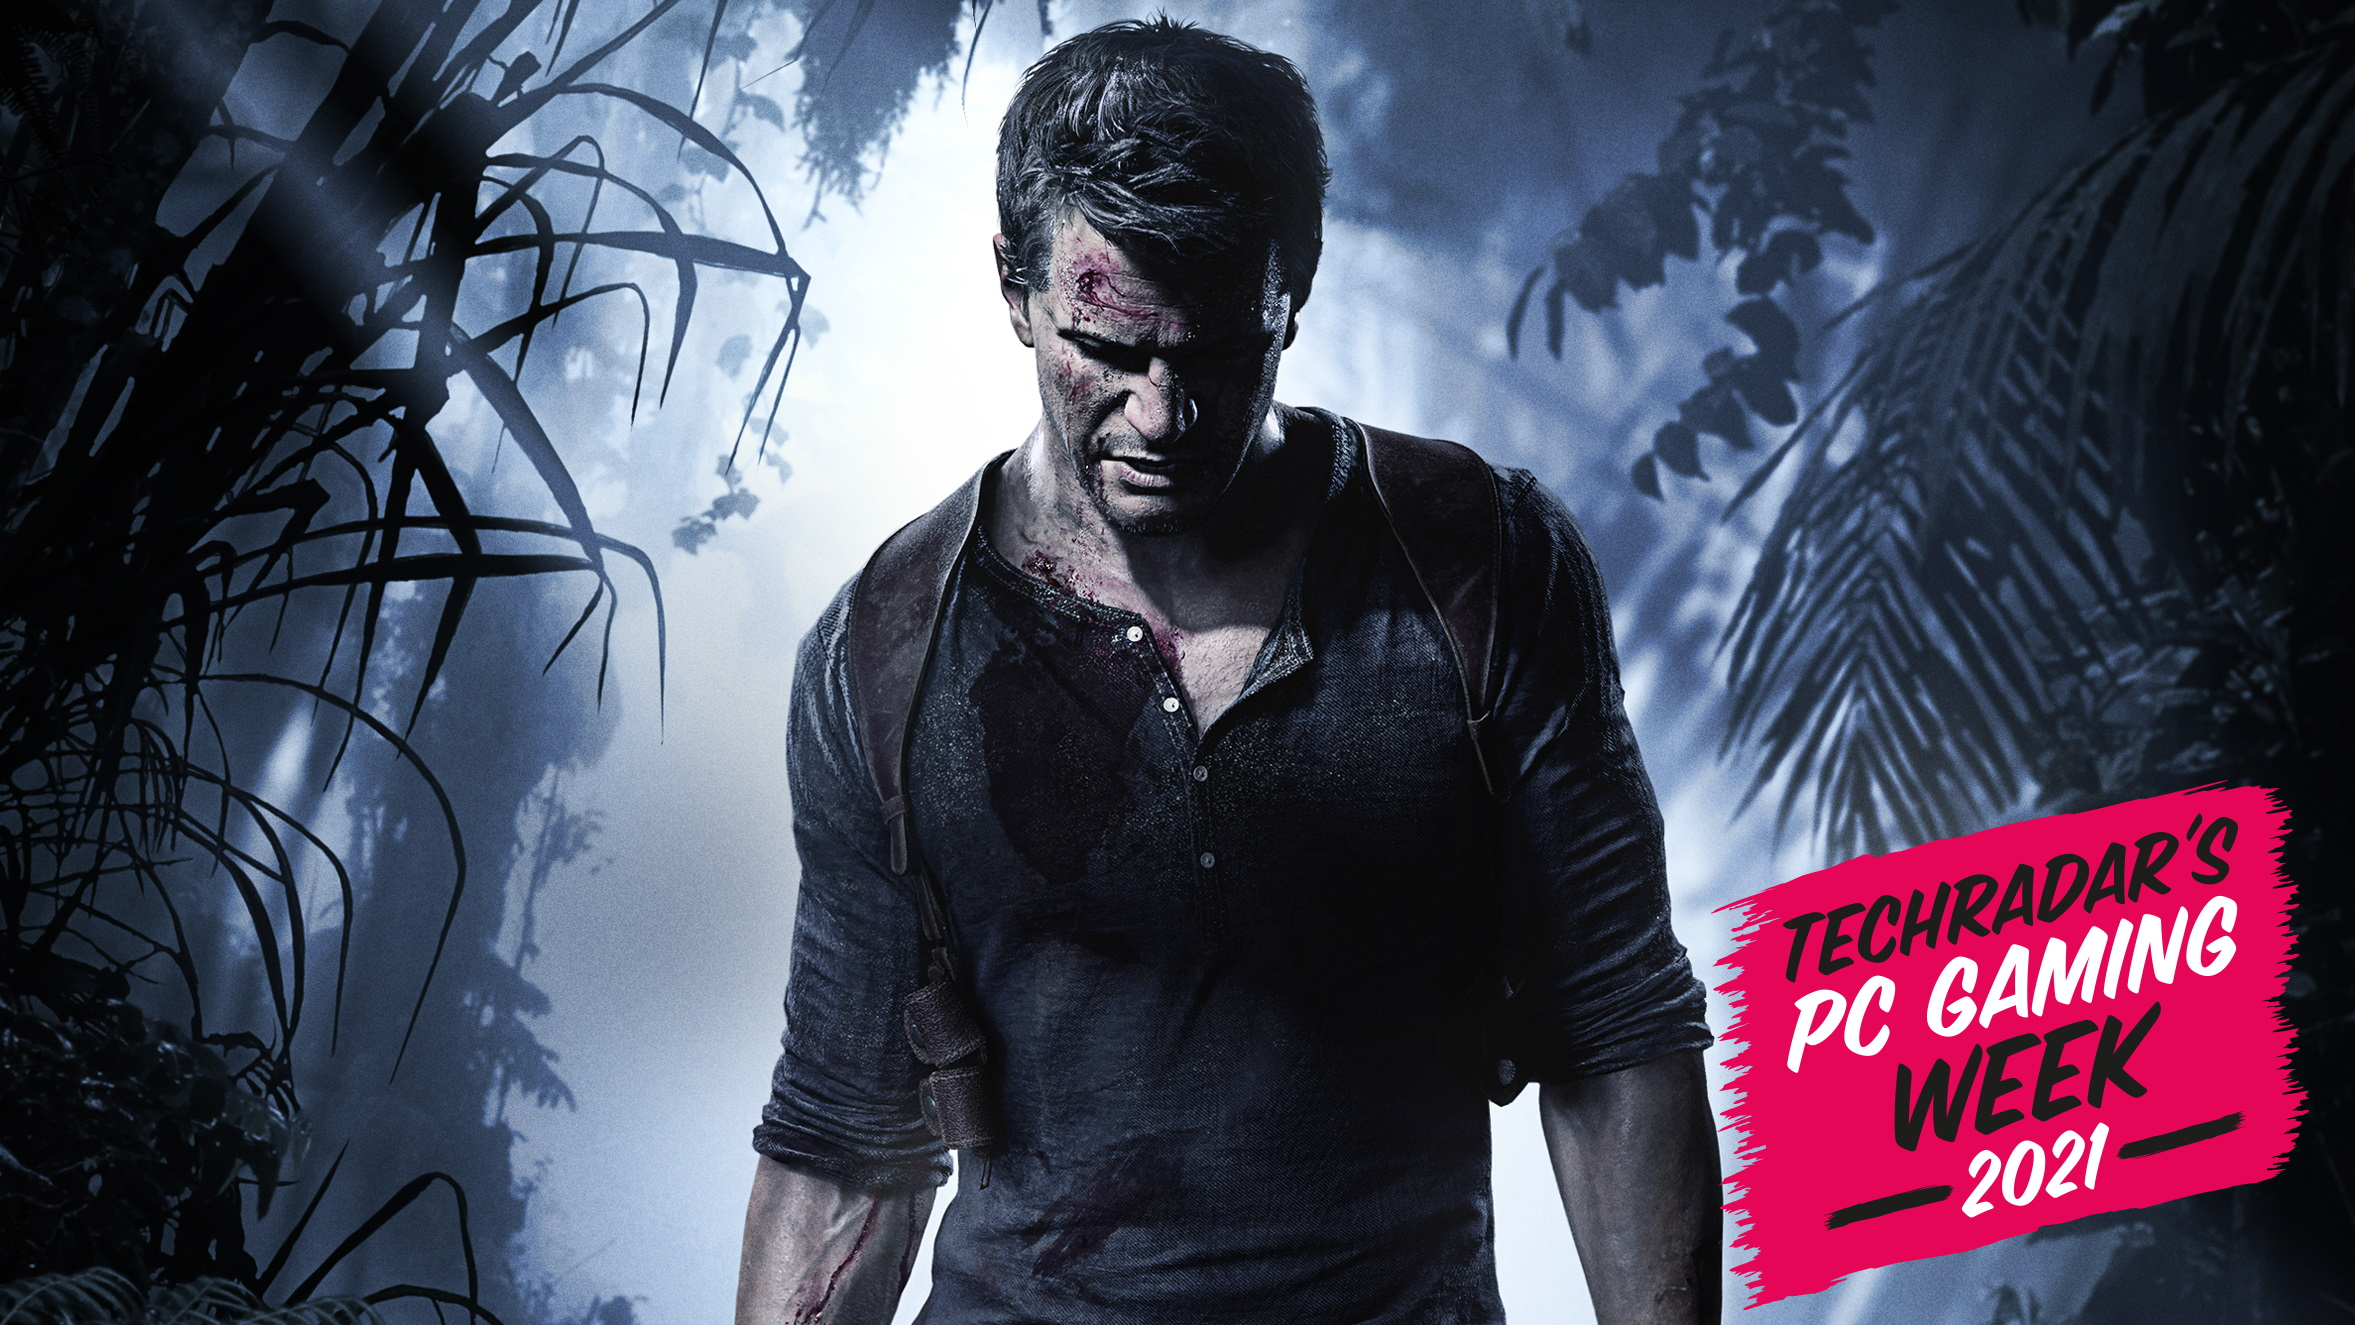 An image of Uncharted protagonist Nathan Drake in the forest